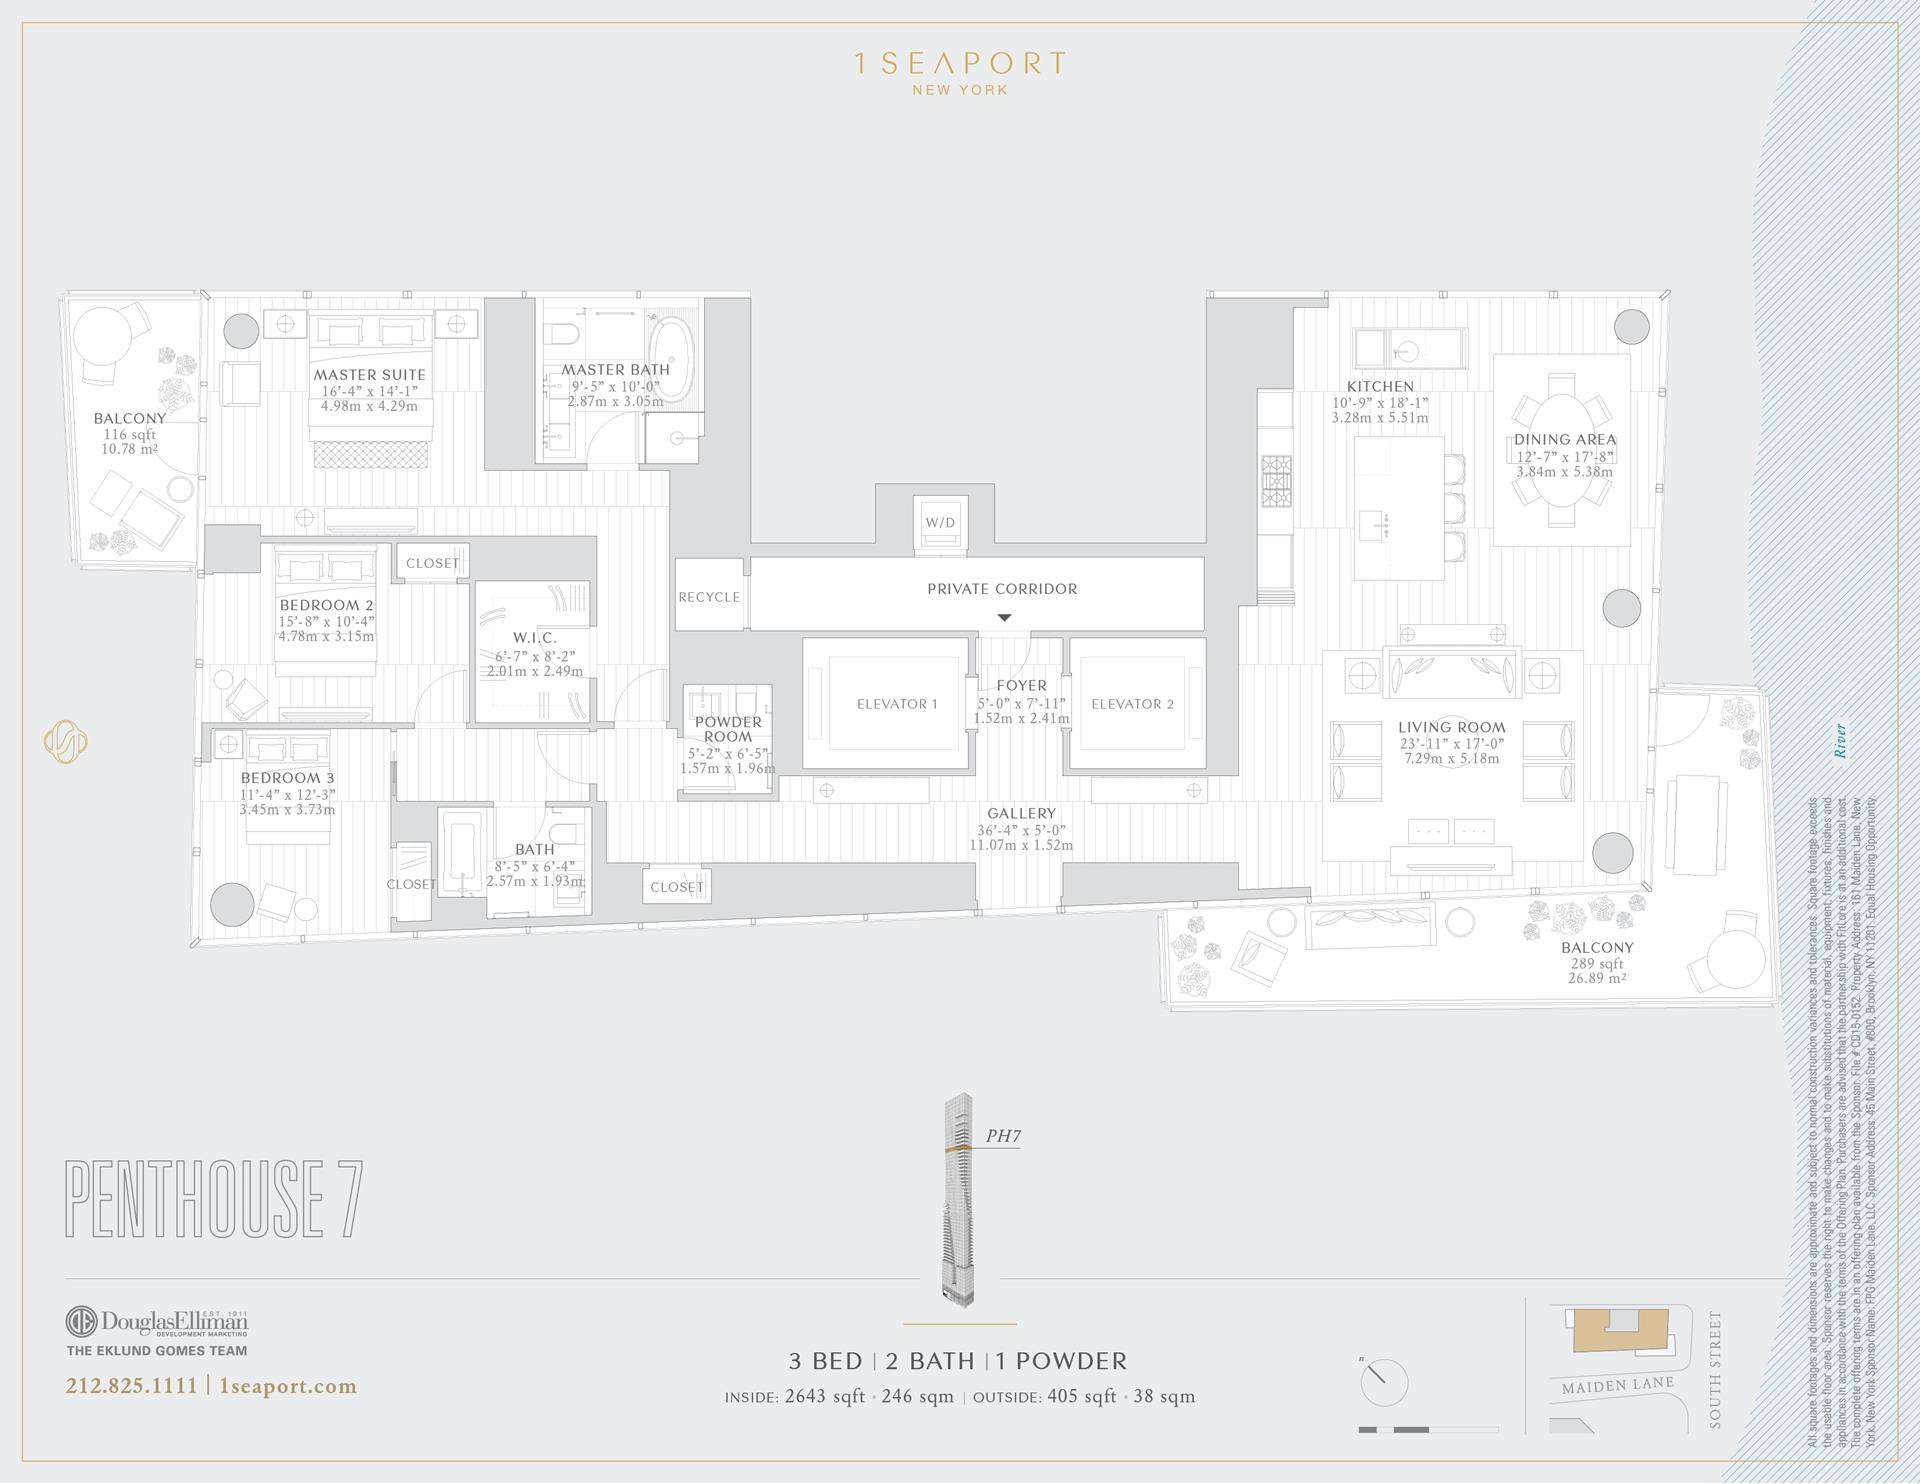 Floor plan of 1 Seaport, 161 Maiden Ln, PH7 - Financial District, New York